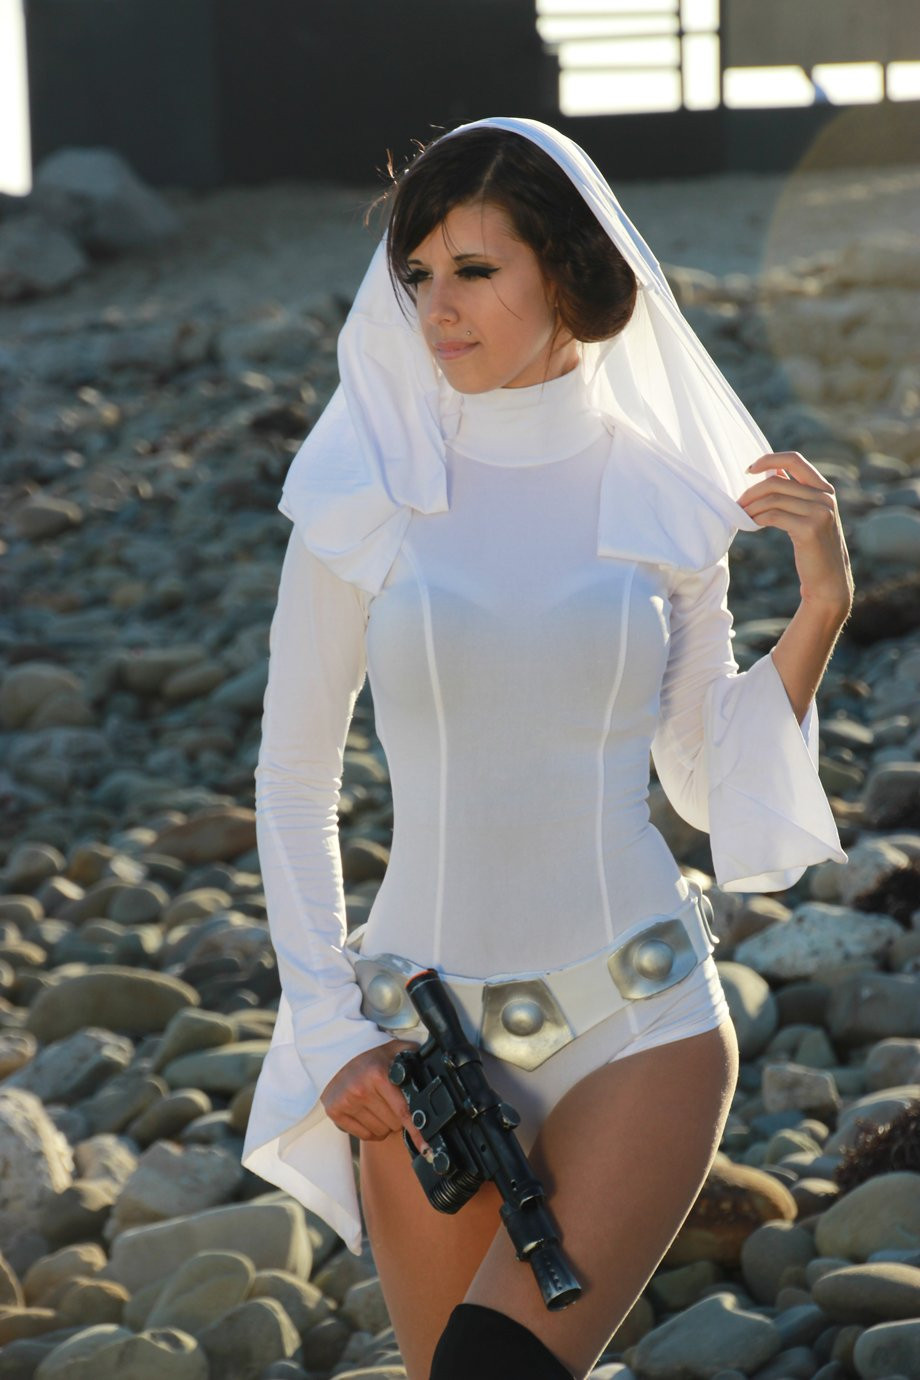 Sexy Star Wars cosplay Girls